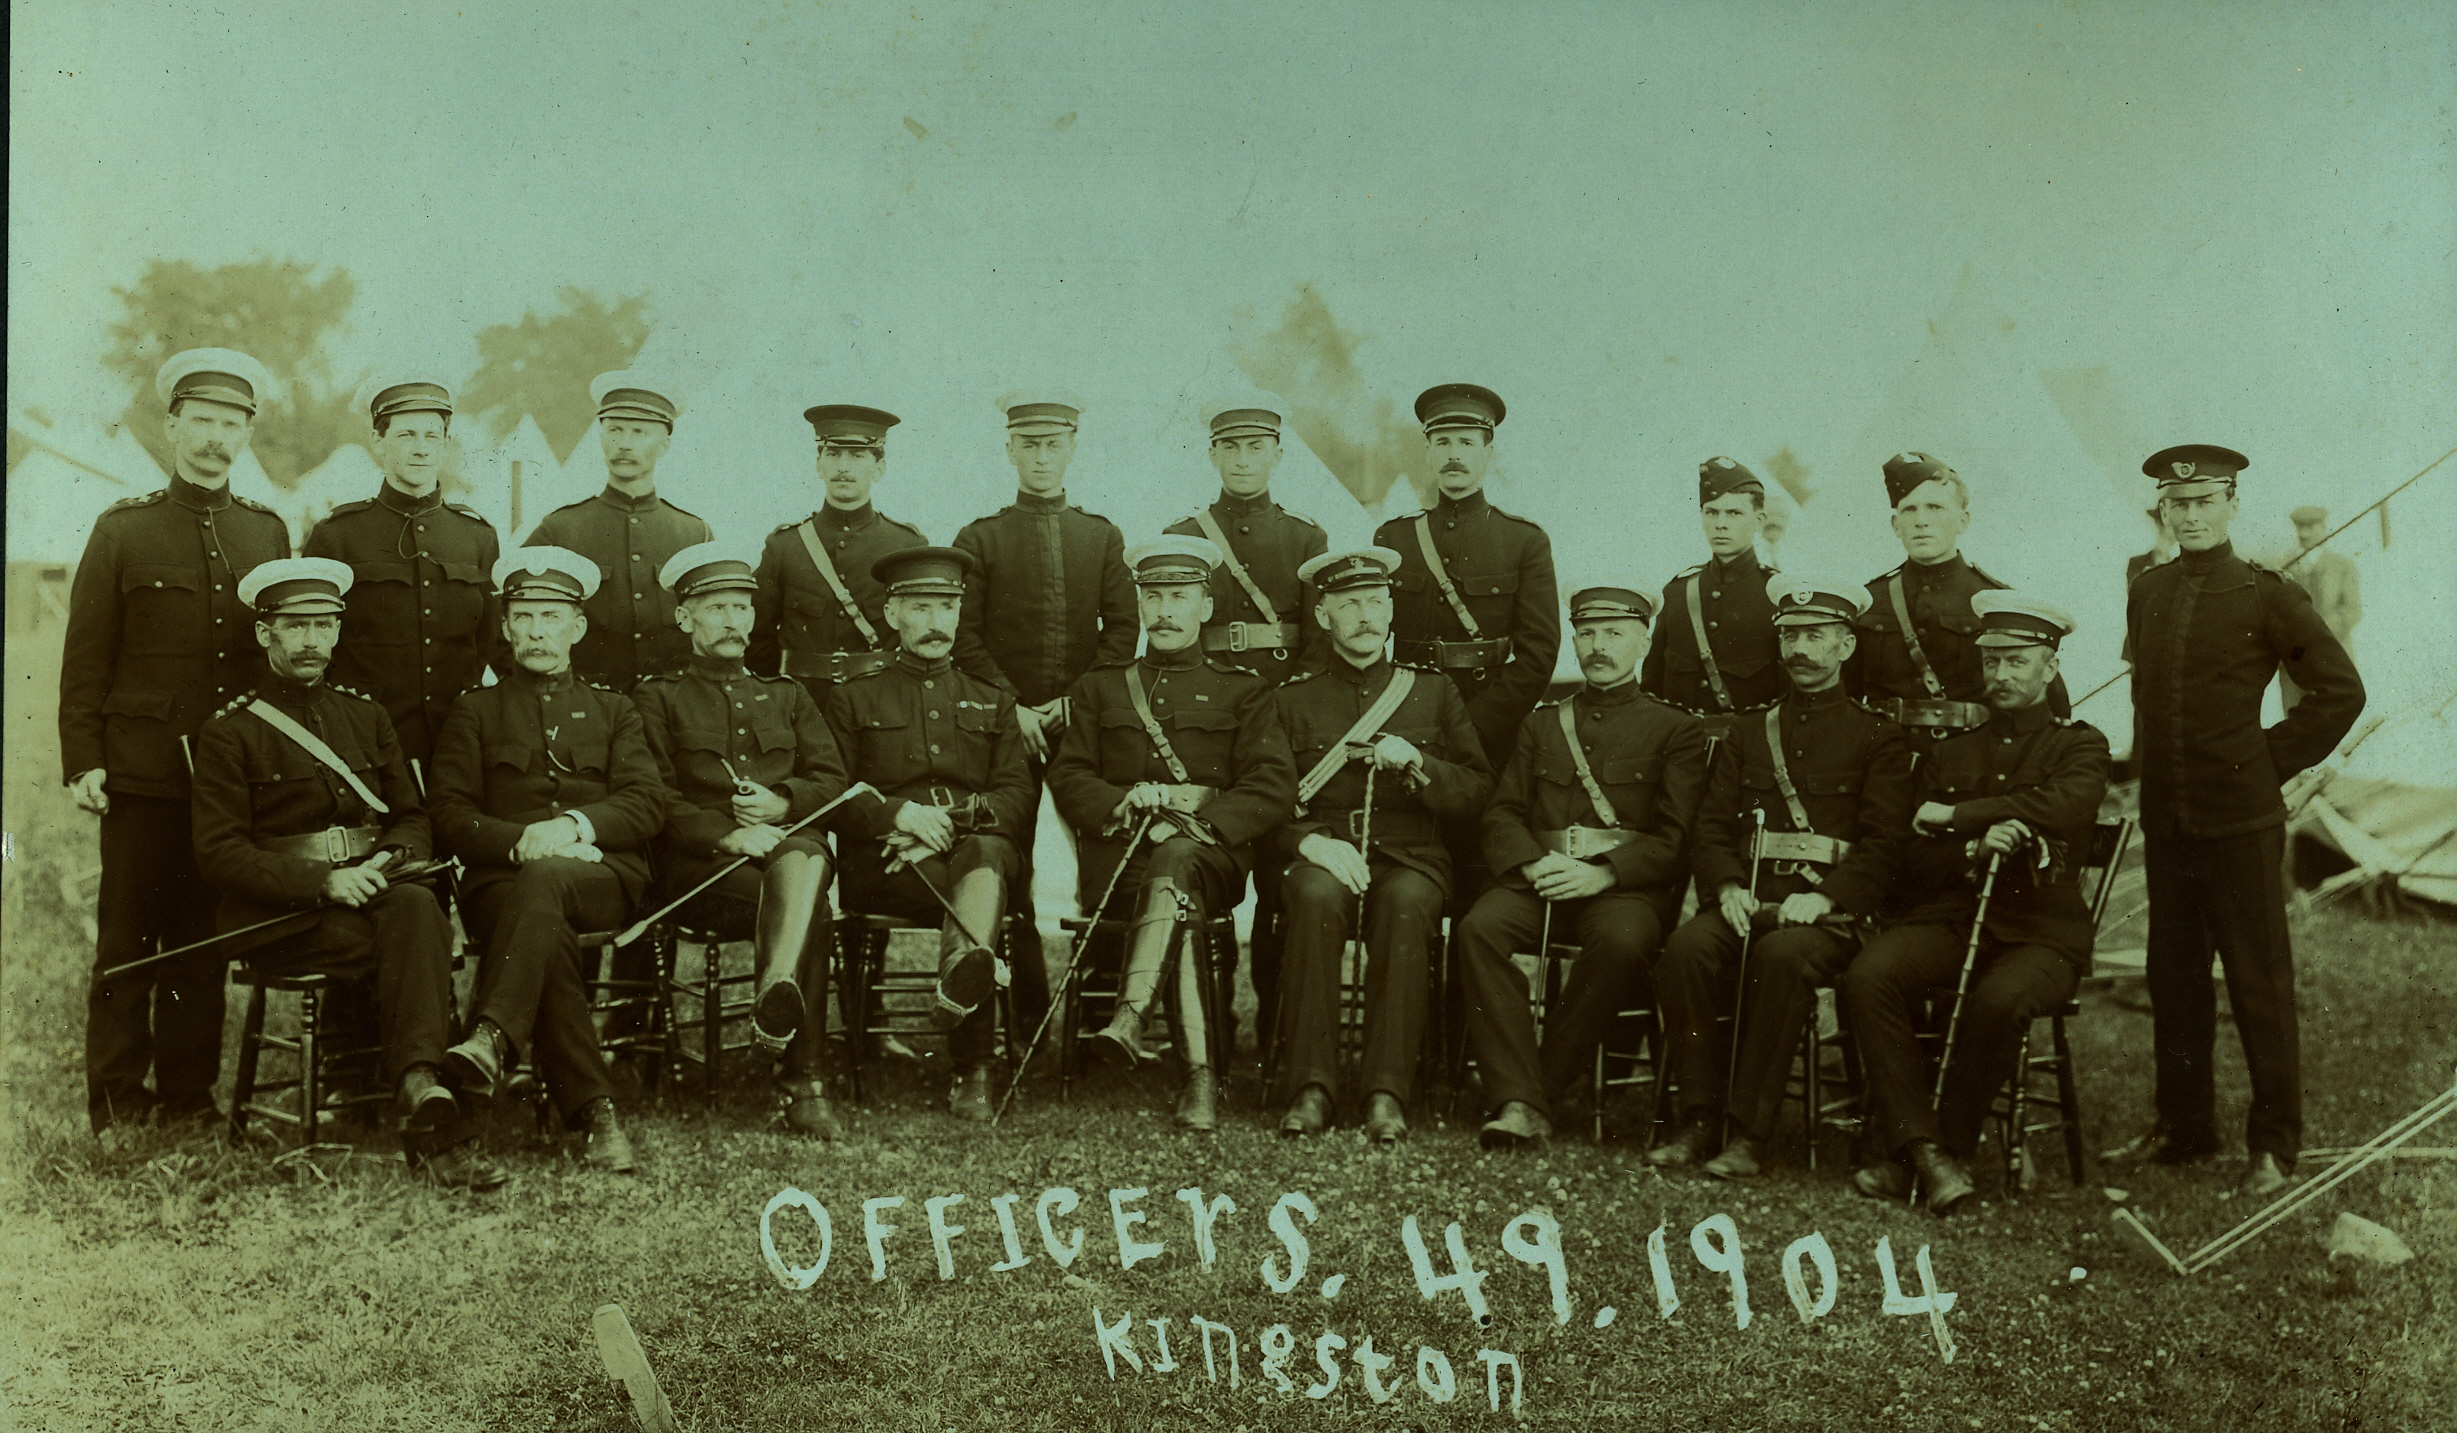 Charles Archibald Bleecker, Officers 1904 1st Row 2nd from right